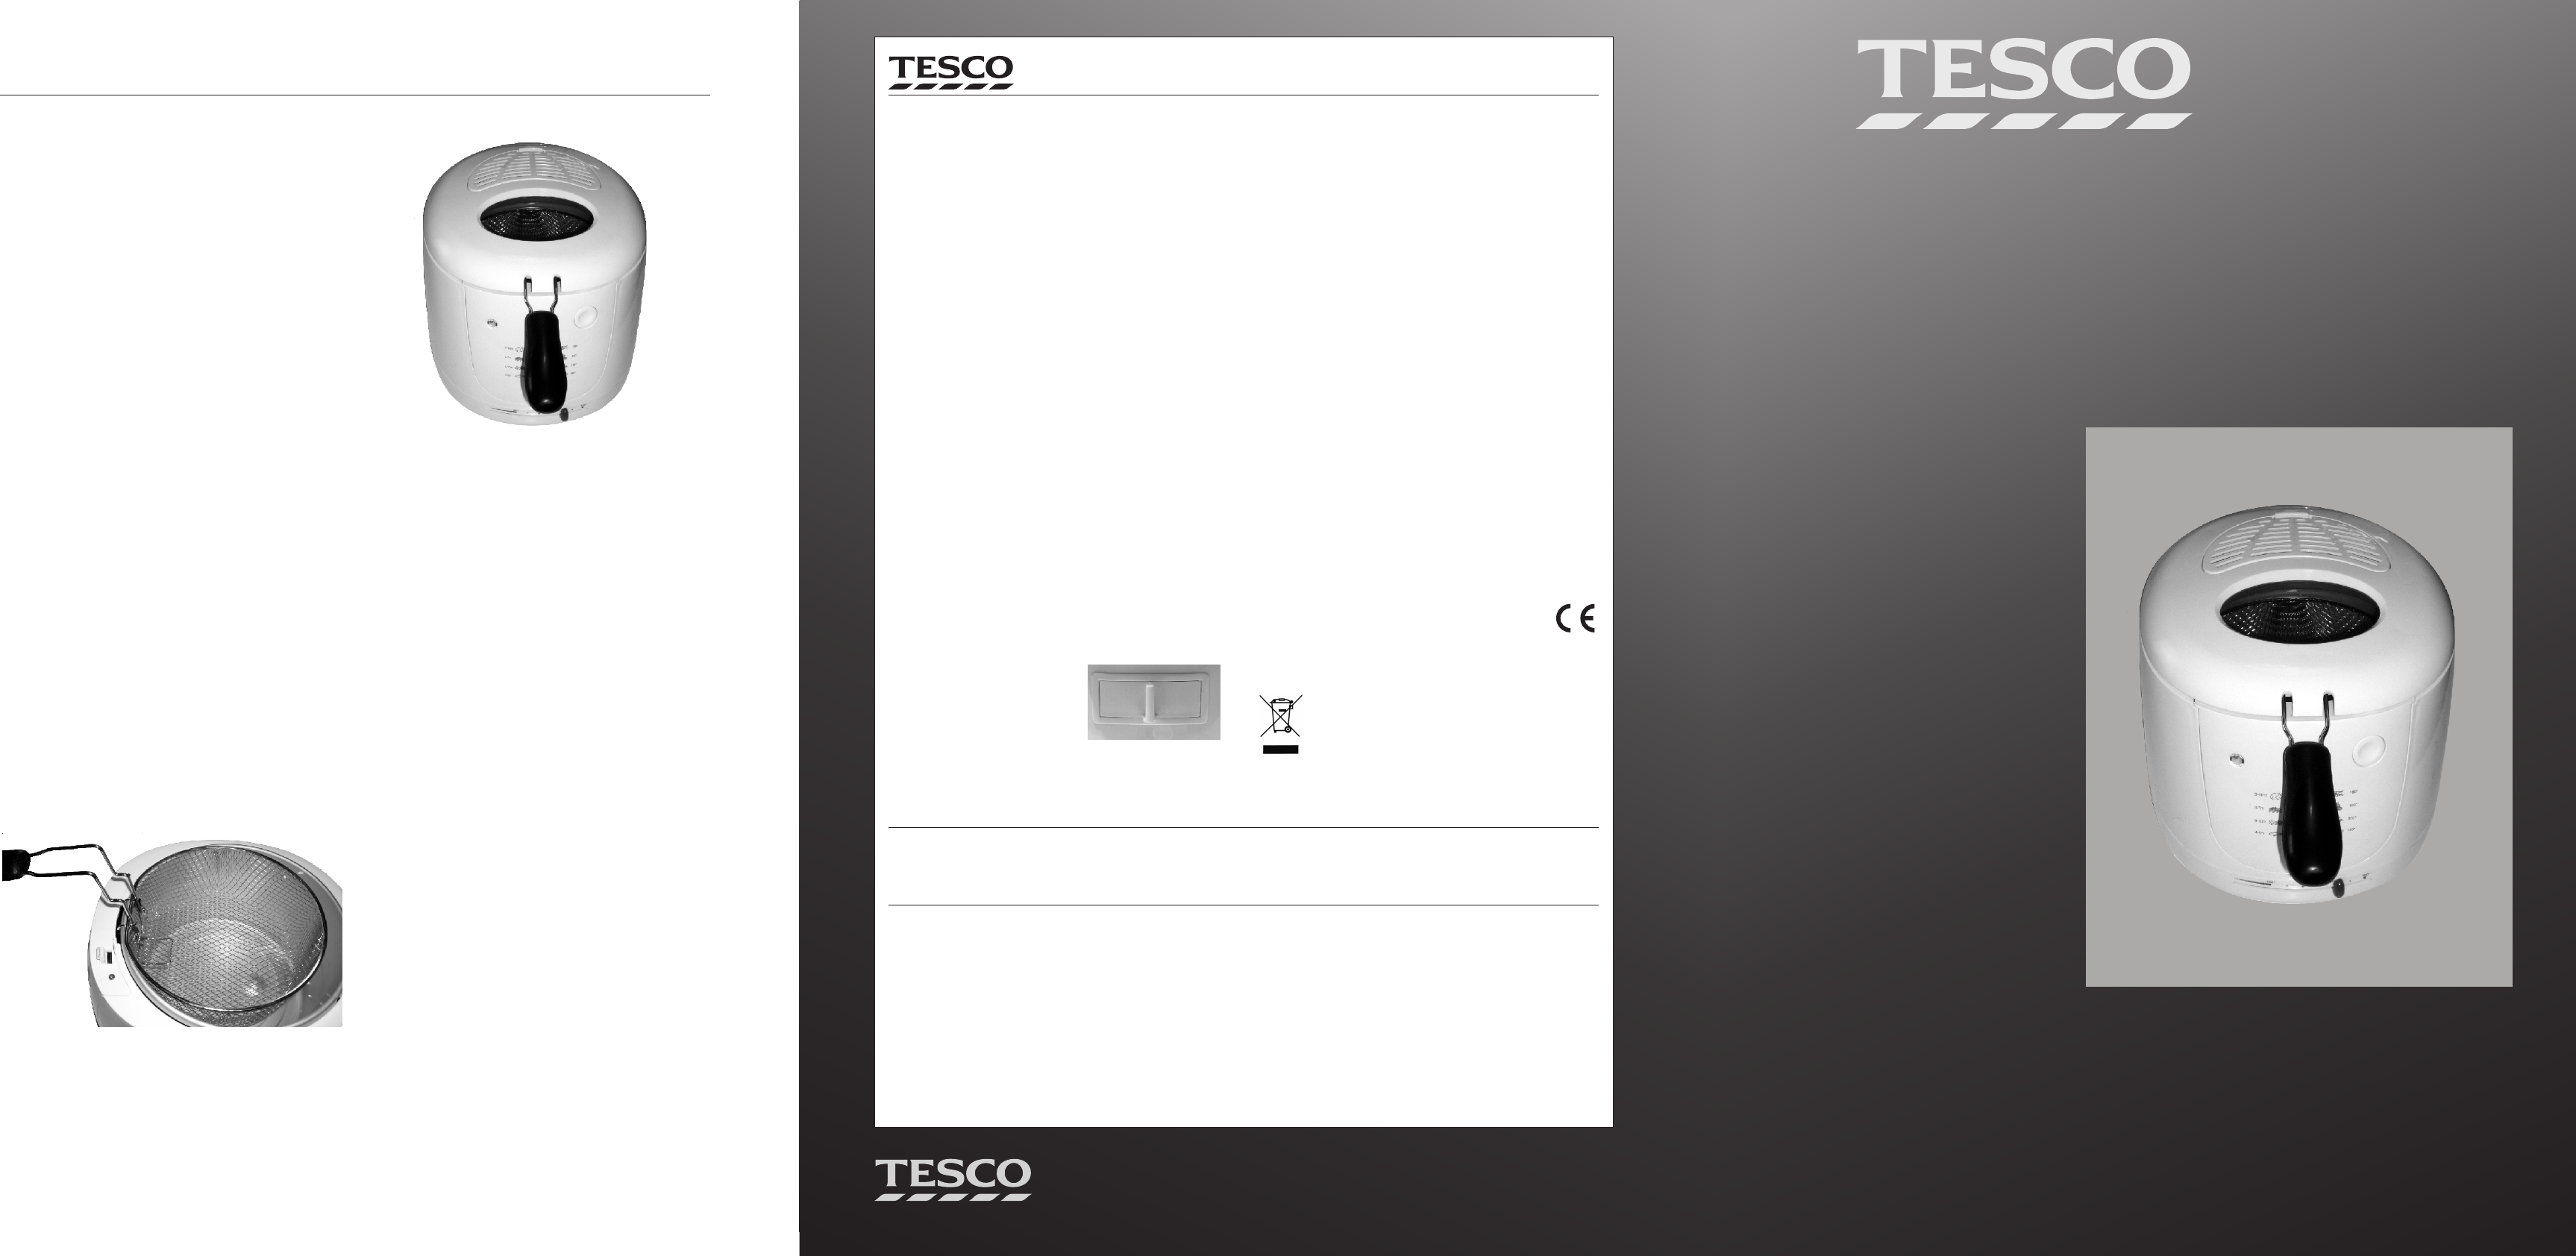 tesco com fryer df10 user guide manualsonline com rh kitchen manualsonline com Example User Guide Quick Reference Guide